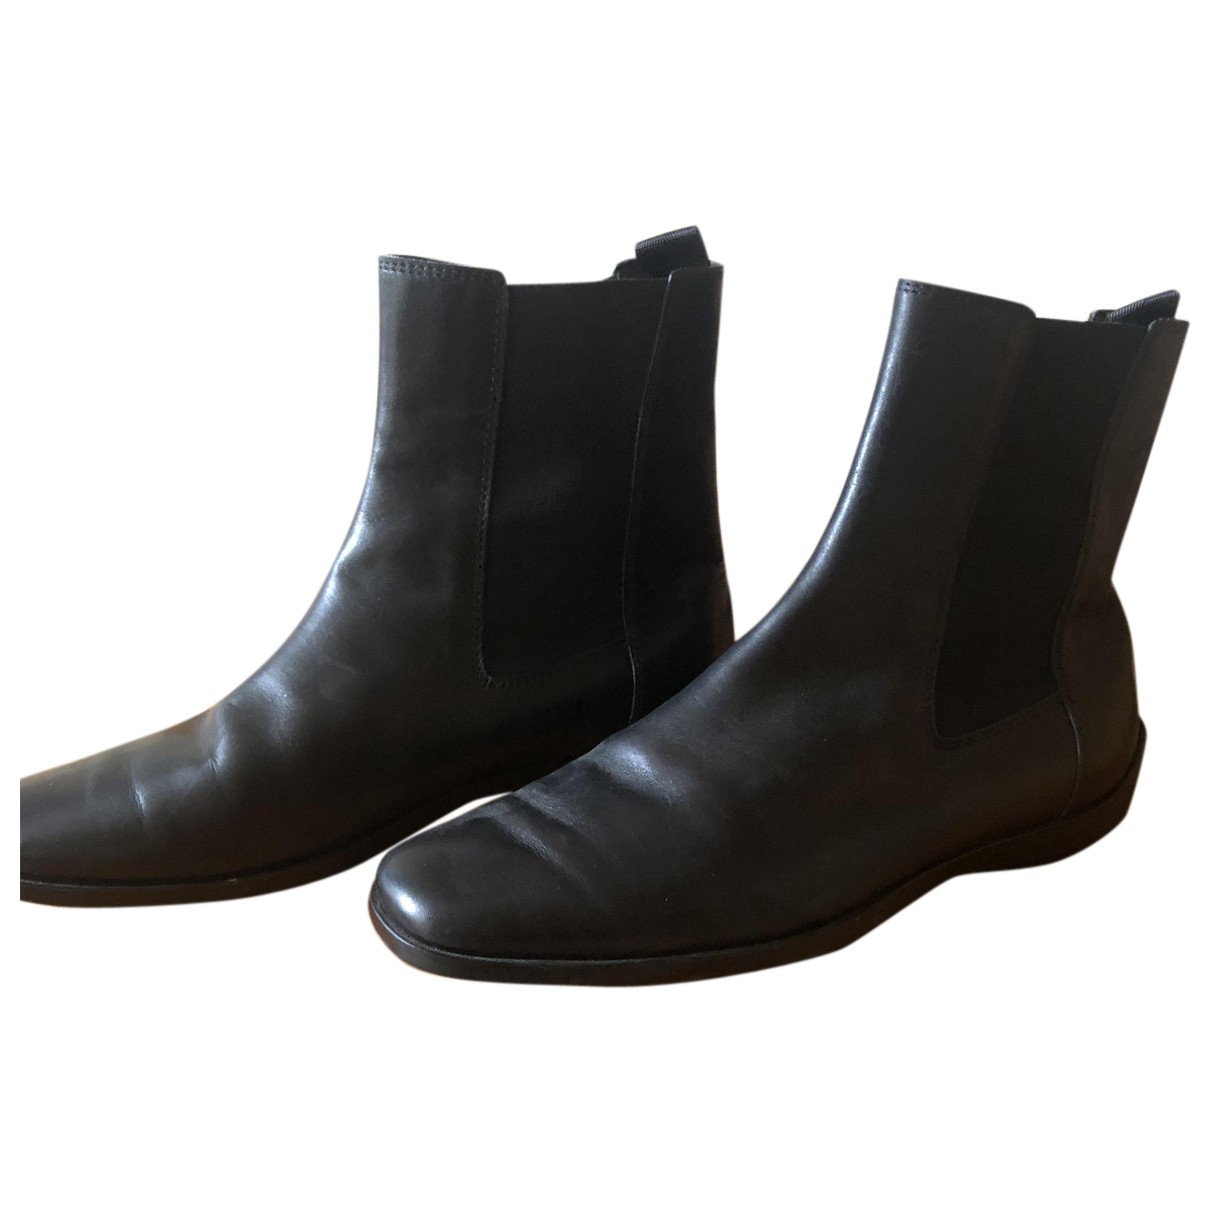 Tod's N Black Leather Ankle boots for Women 36 EU